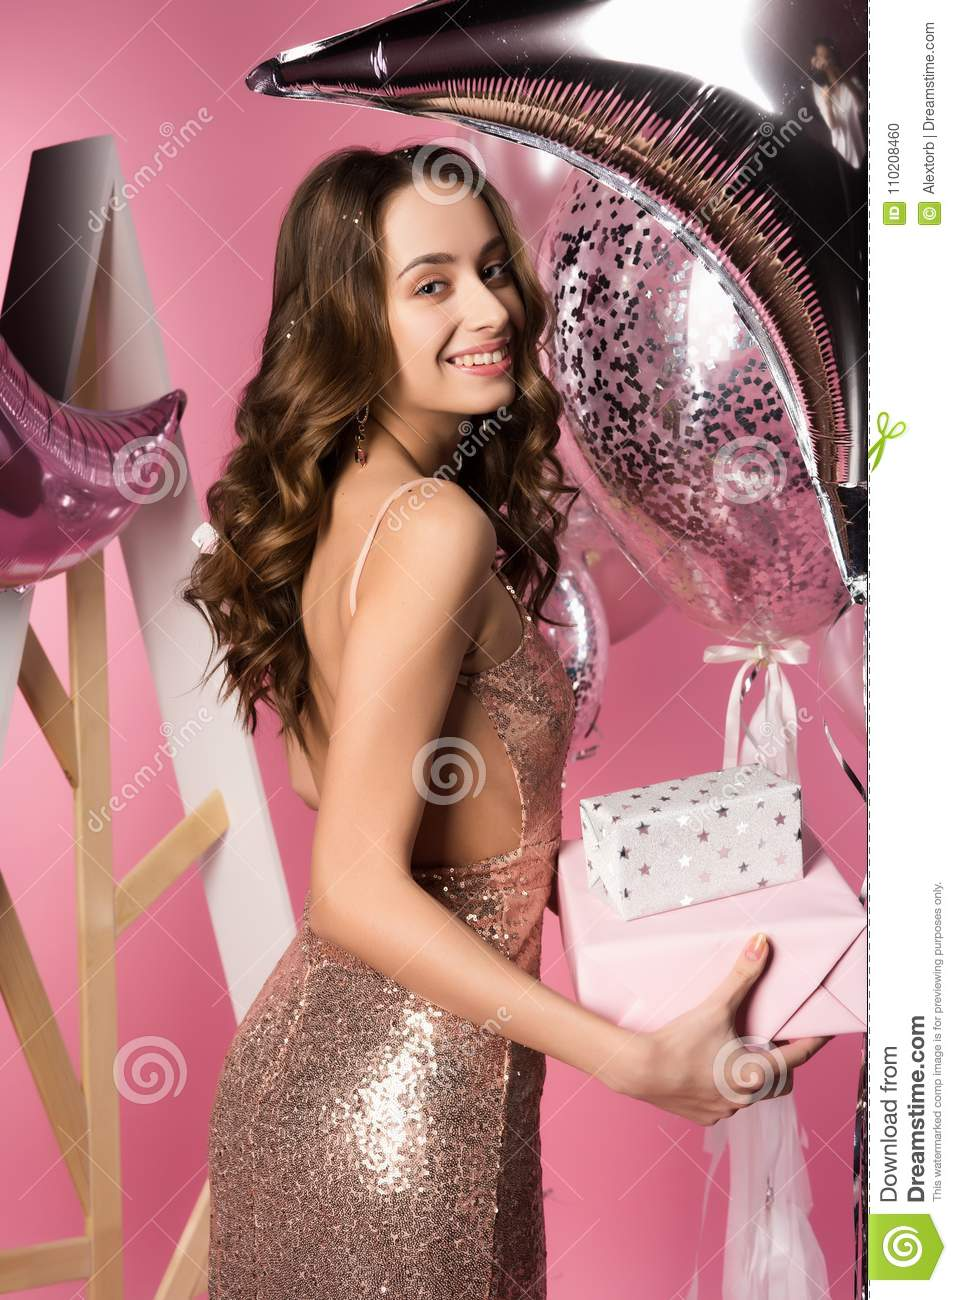 Girls wearing tight dresses pity